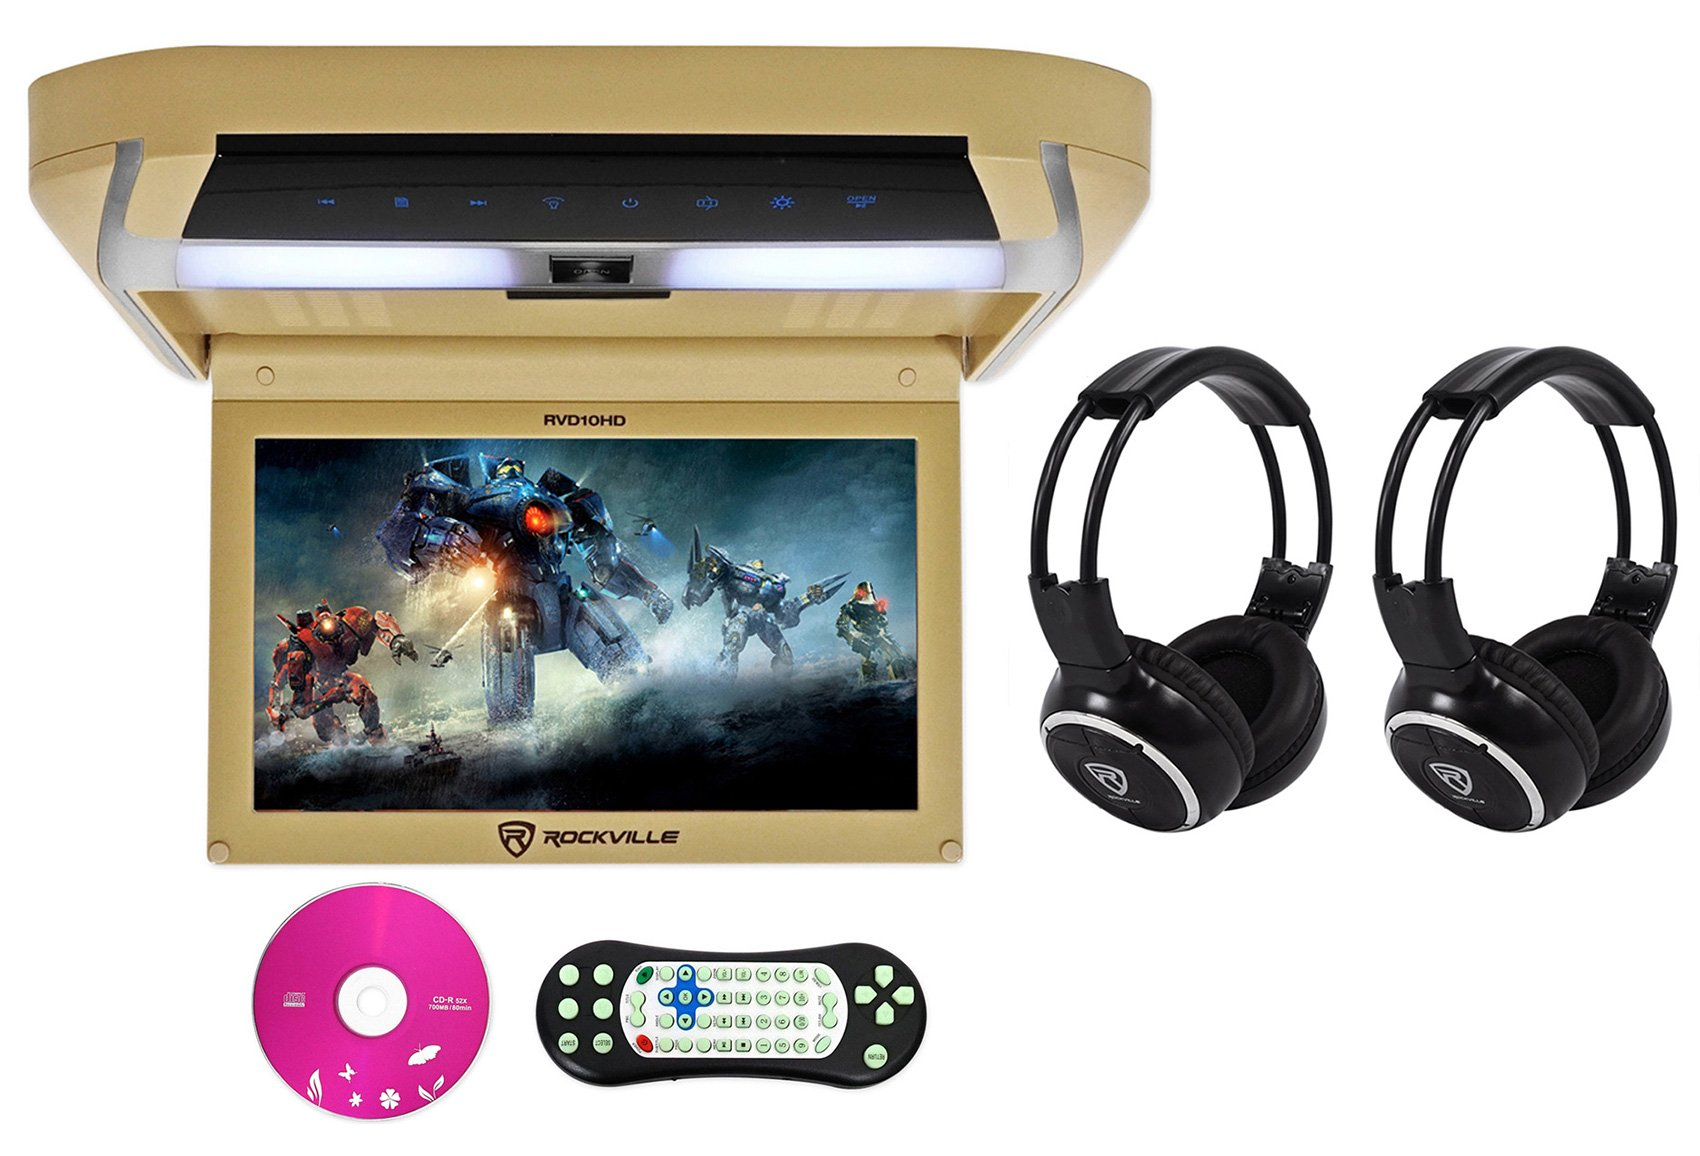 Package: Rockville RVD10HD-BG 10.1'' Beige Flip Down Monitor With DVD Player, HDMI, USB/SD, Games, and LED Mood Light Tan + (2) Rockville RFH3 Dual Channel Wireless Ir Headphones